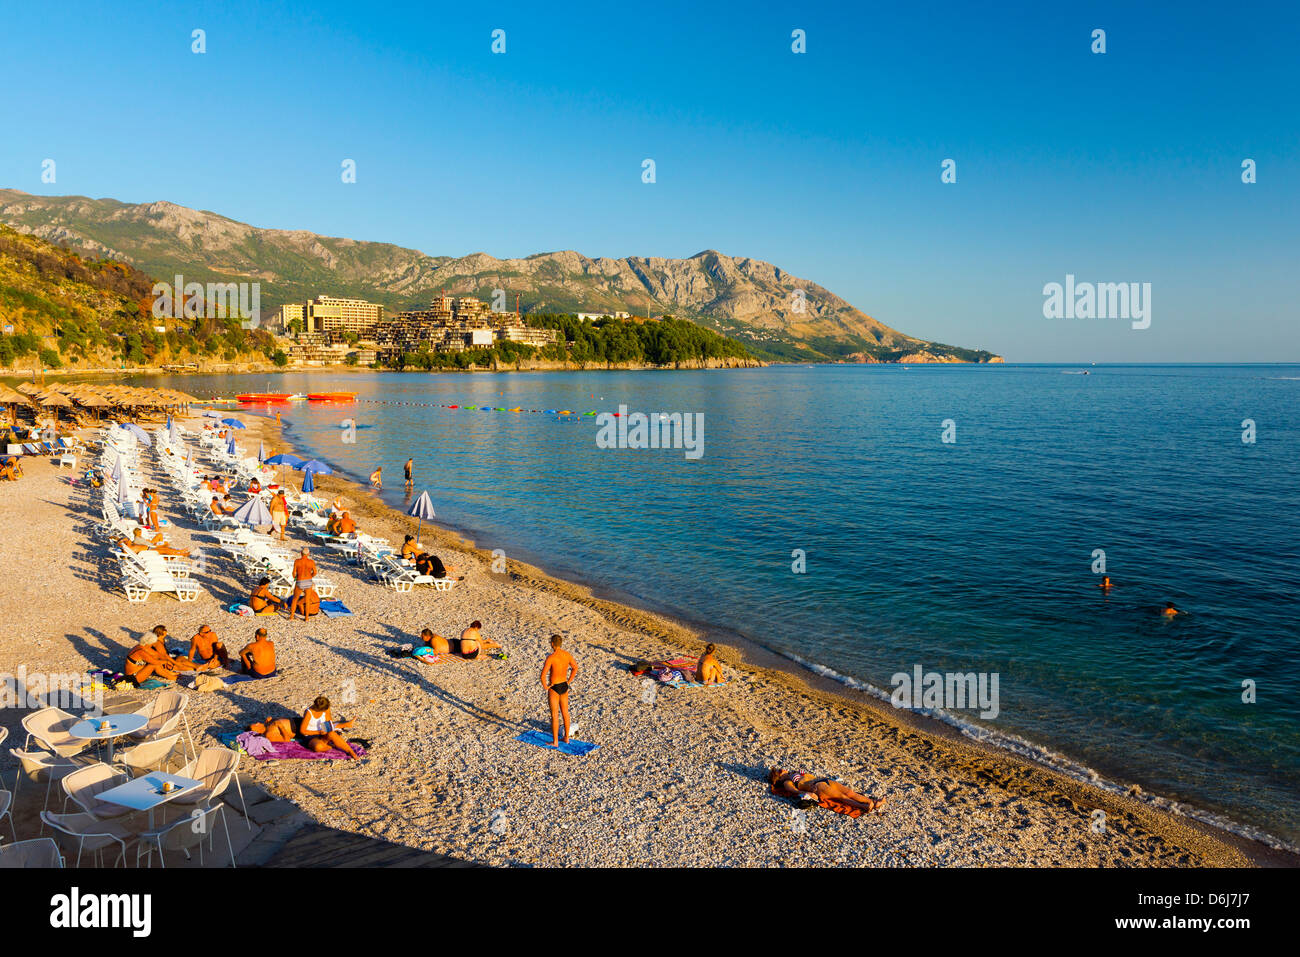 Main Beach, Budva, Montenegro, Europe Stock Photo